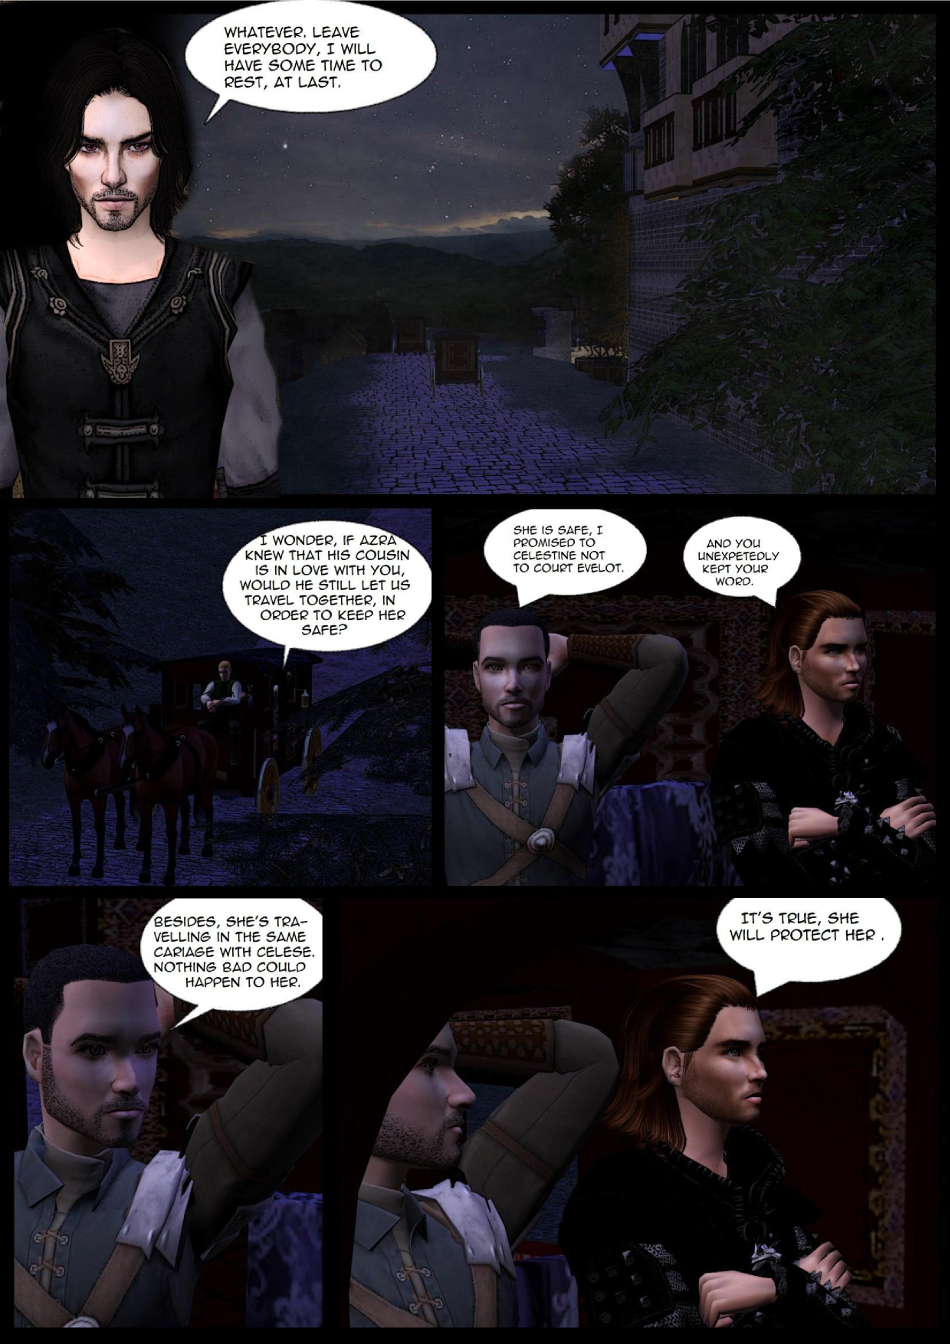 The yearned embrace p.30